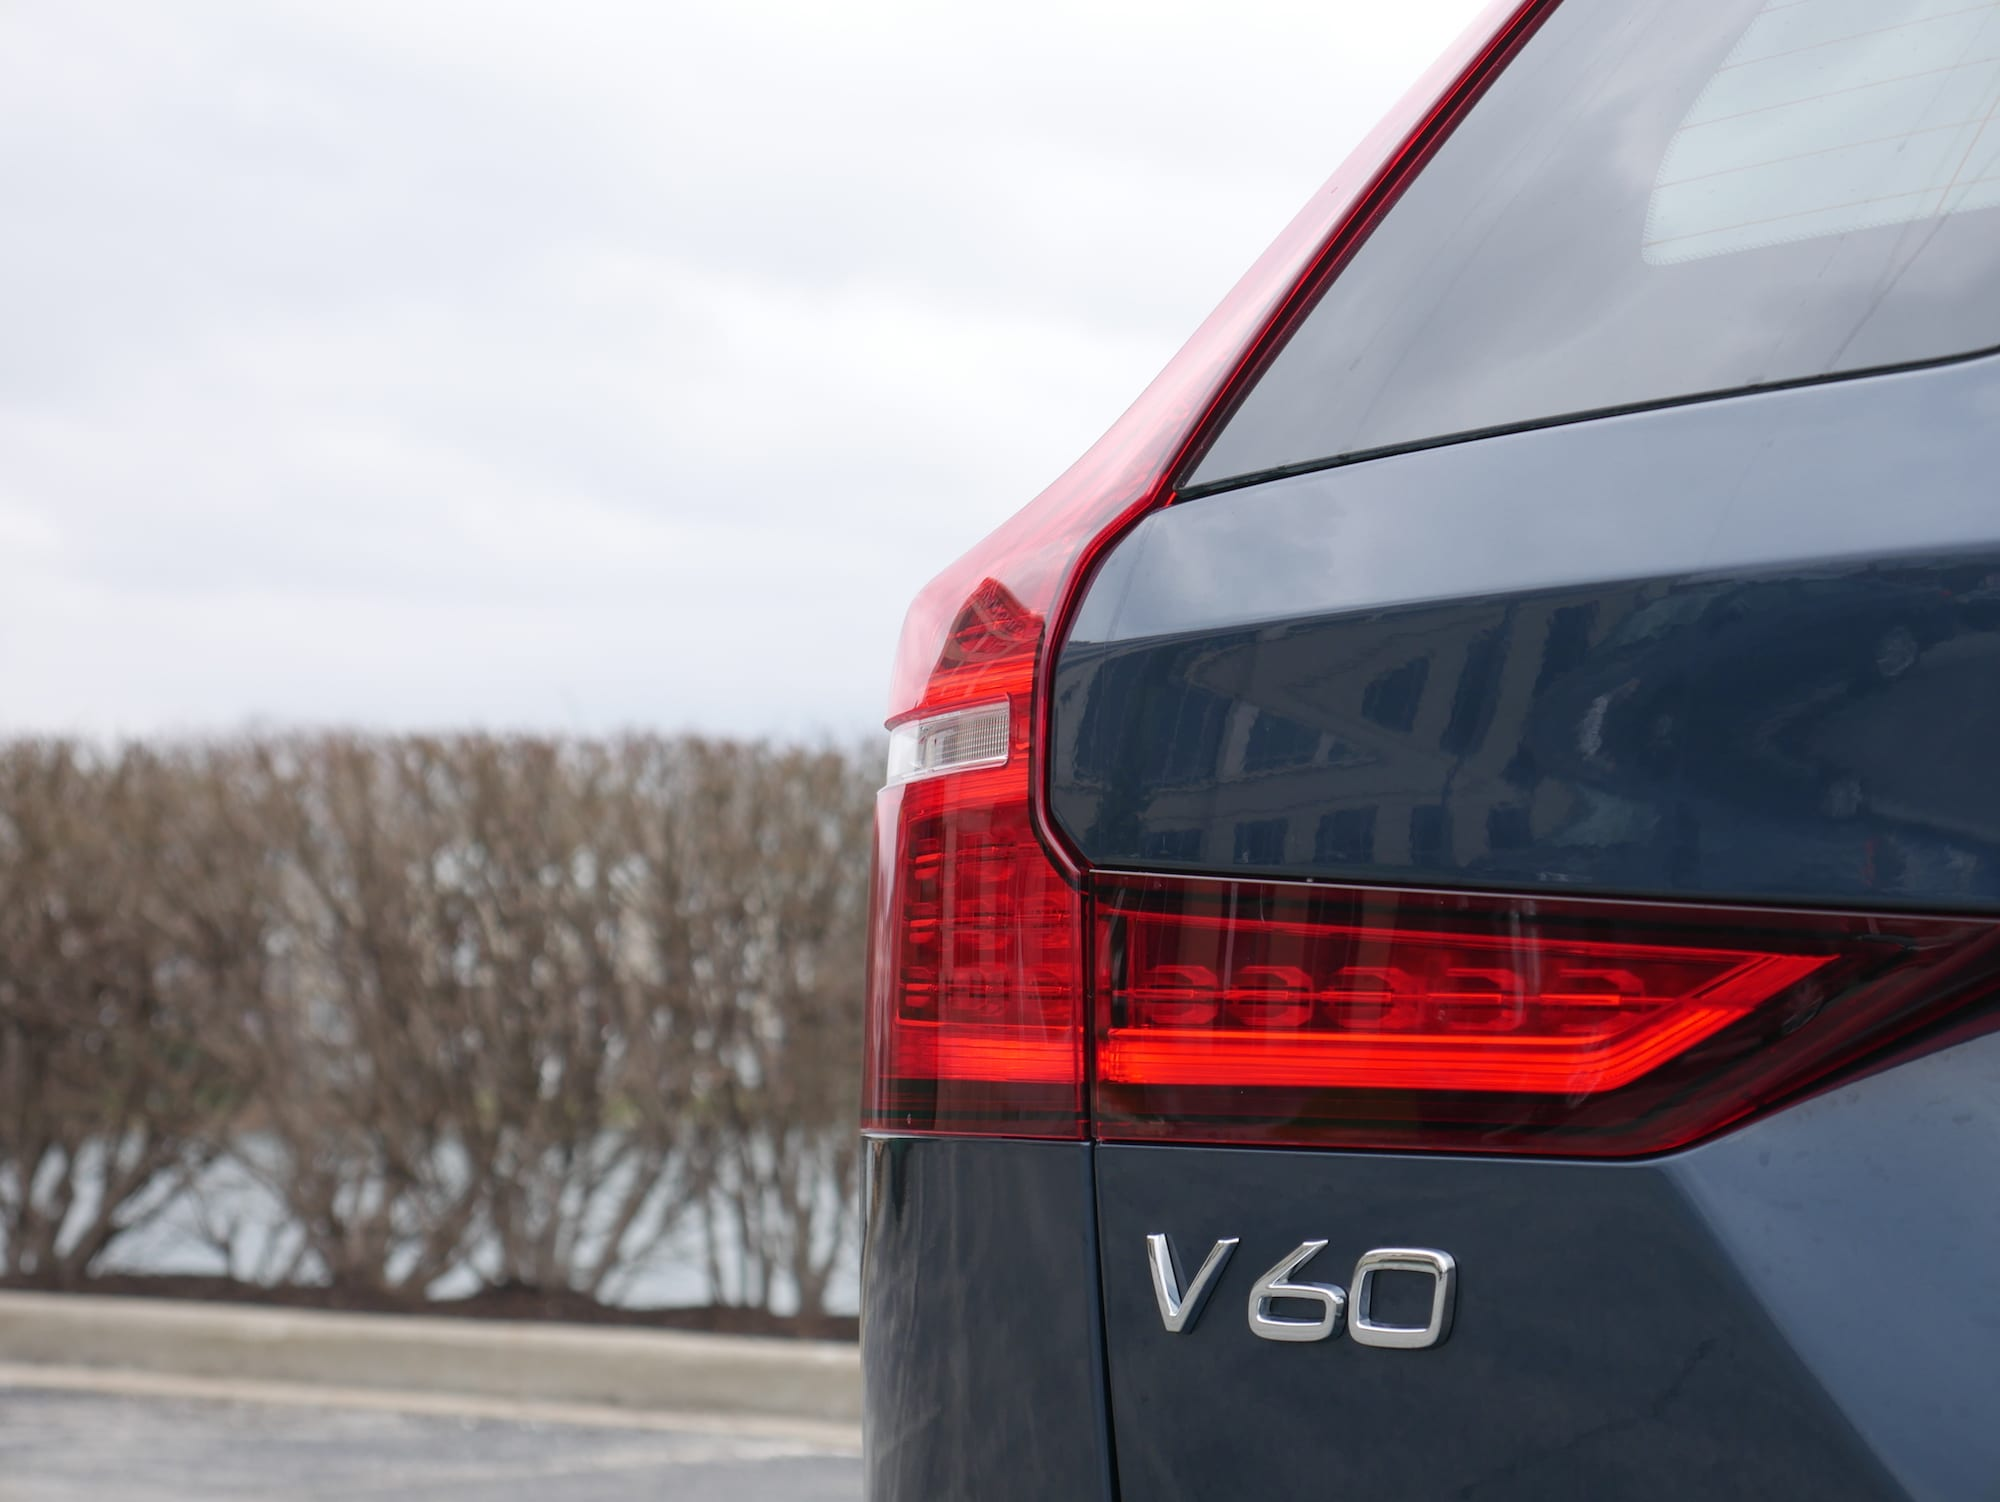 2019 Volvo V60 T6 Inscription badging